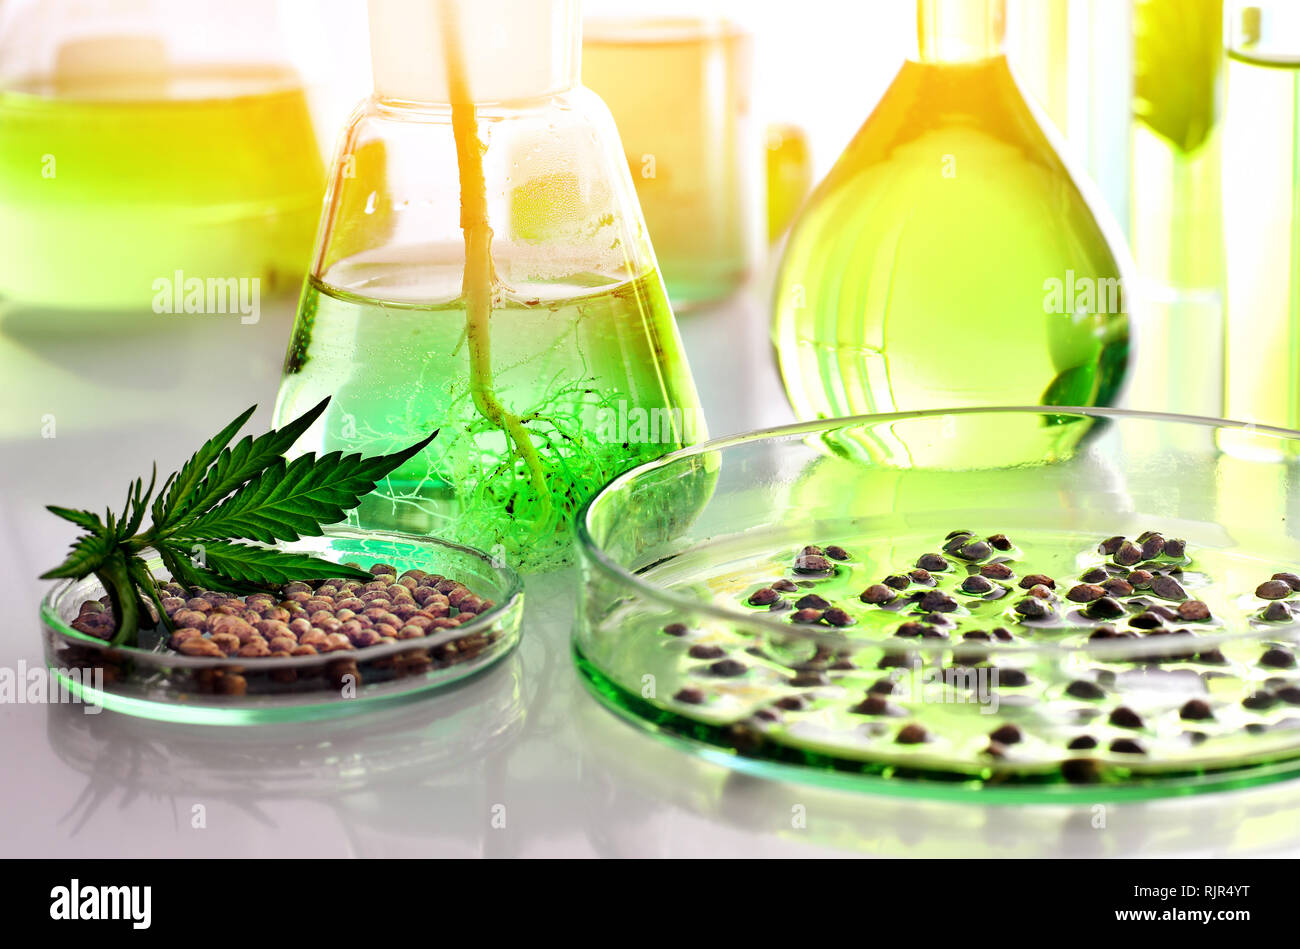 Scientific research of medical cannabis for use in medicine, biotechnology concept - Stock Image